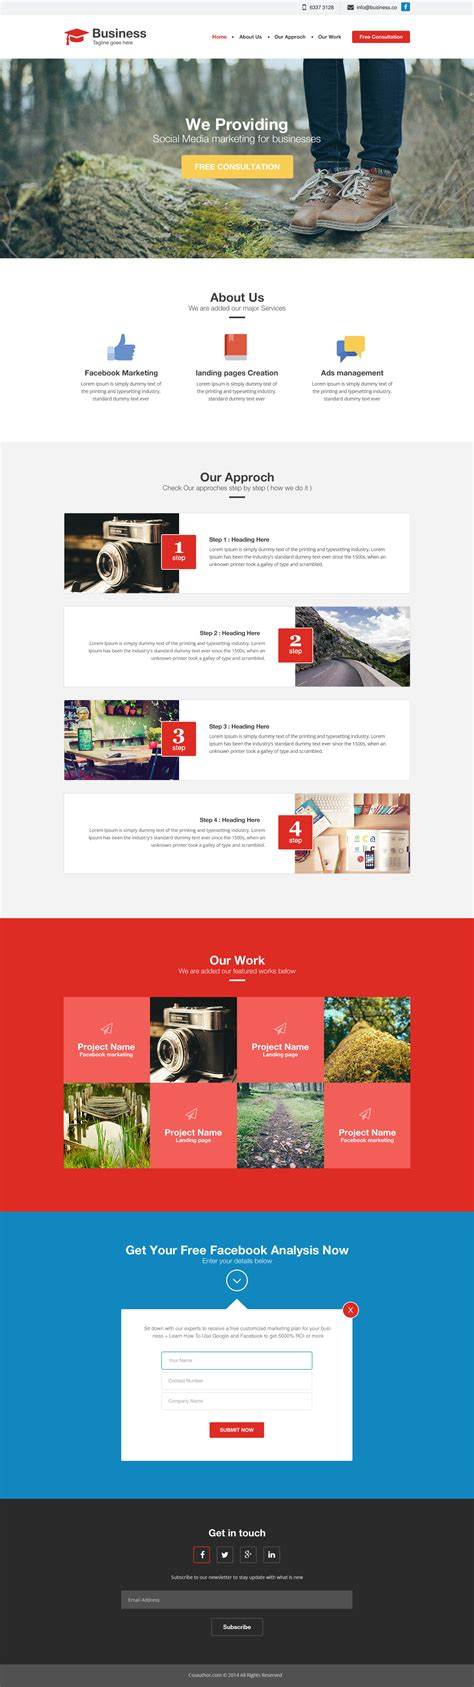 Agency Business Website Html Template Free Html5 Templates Business Website Templates Free